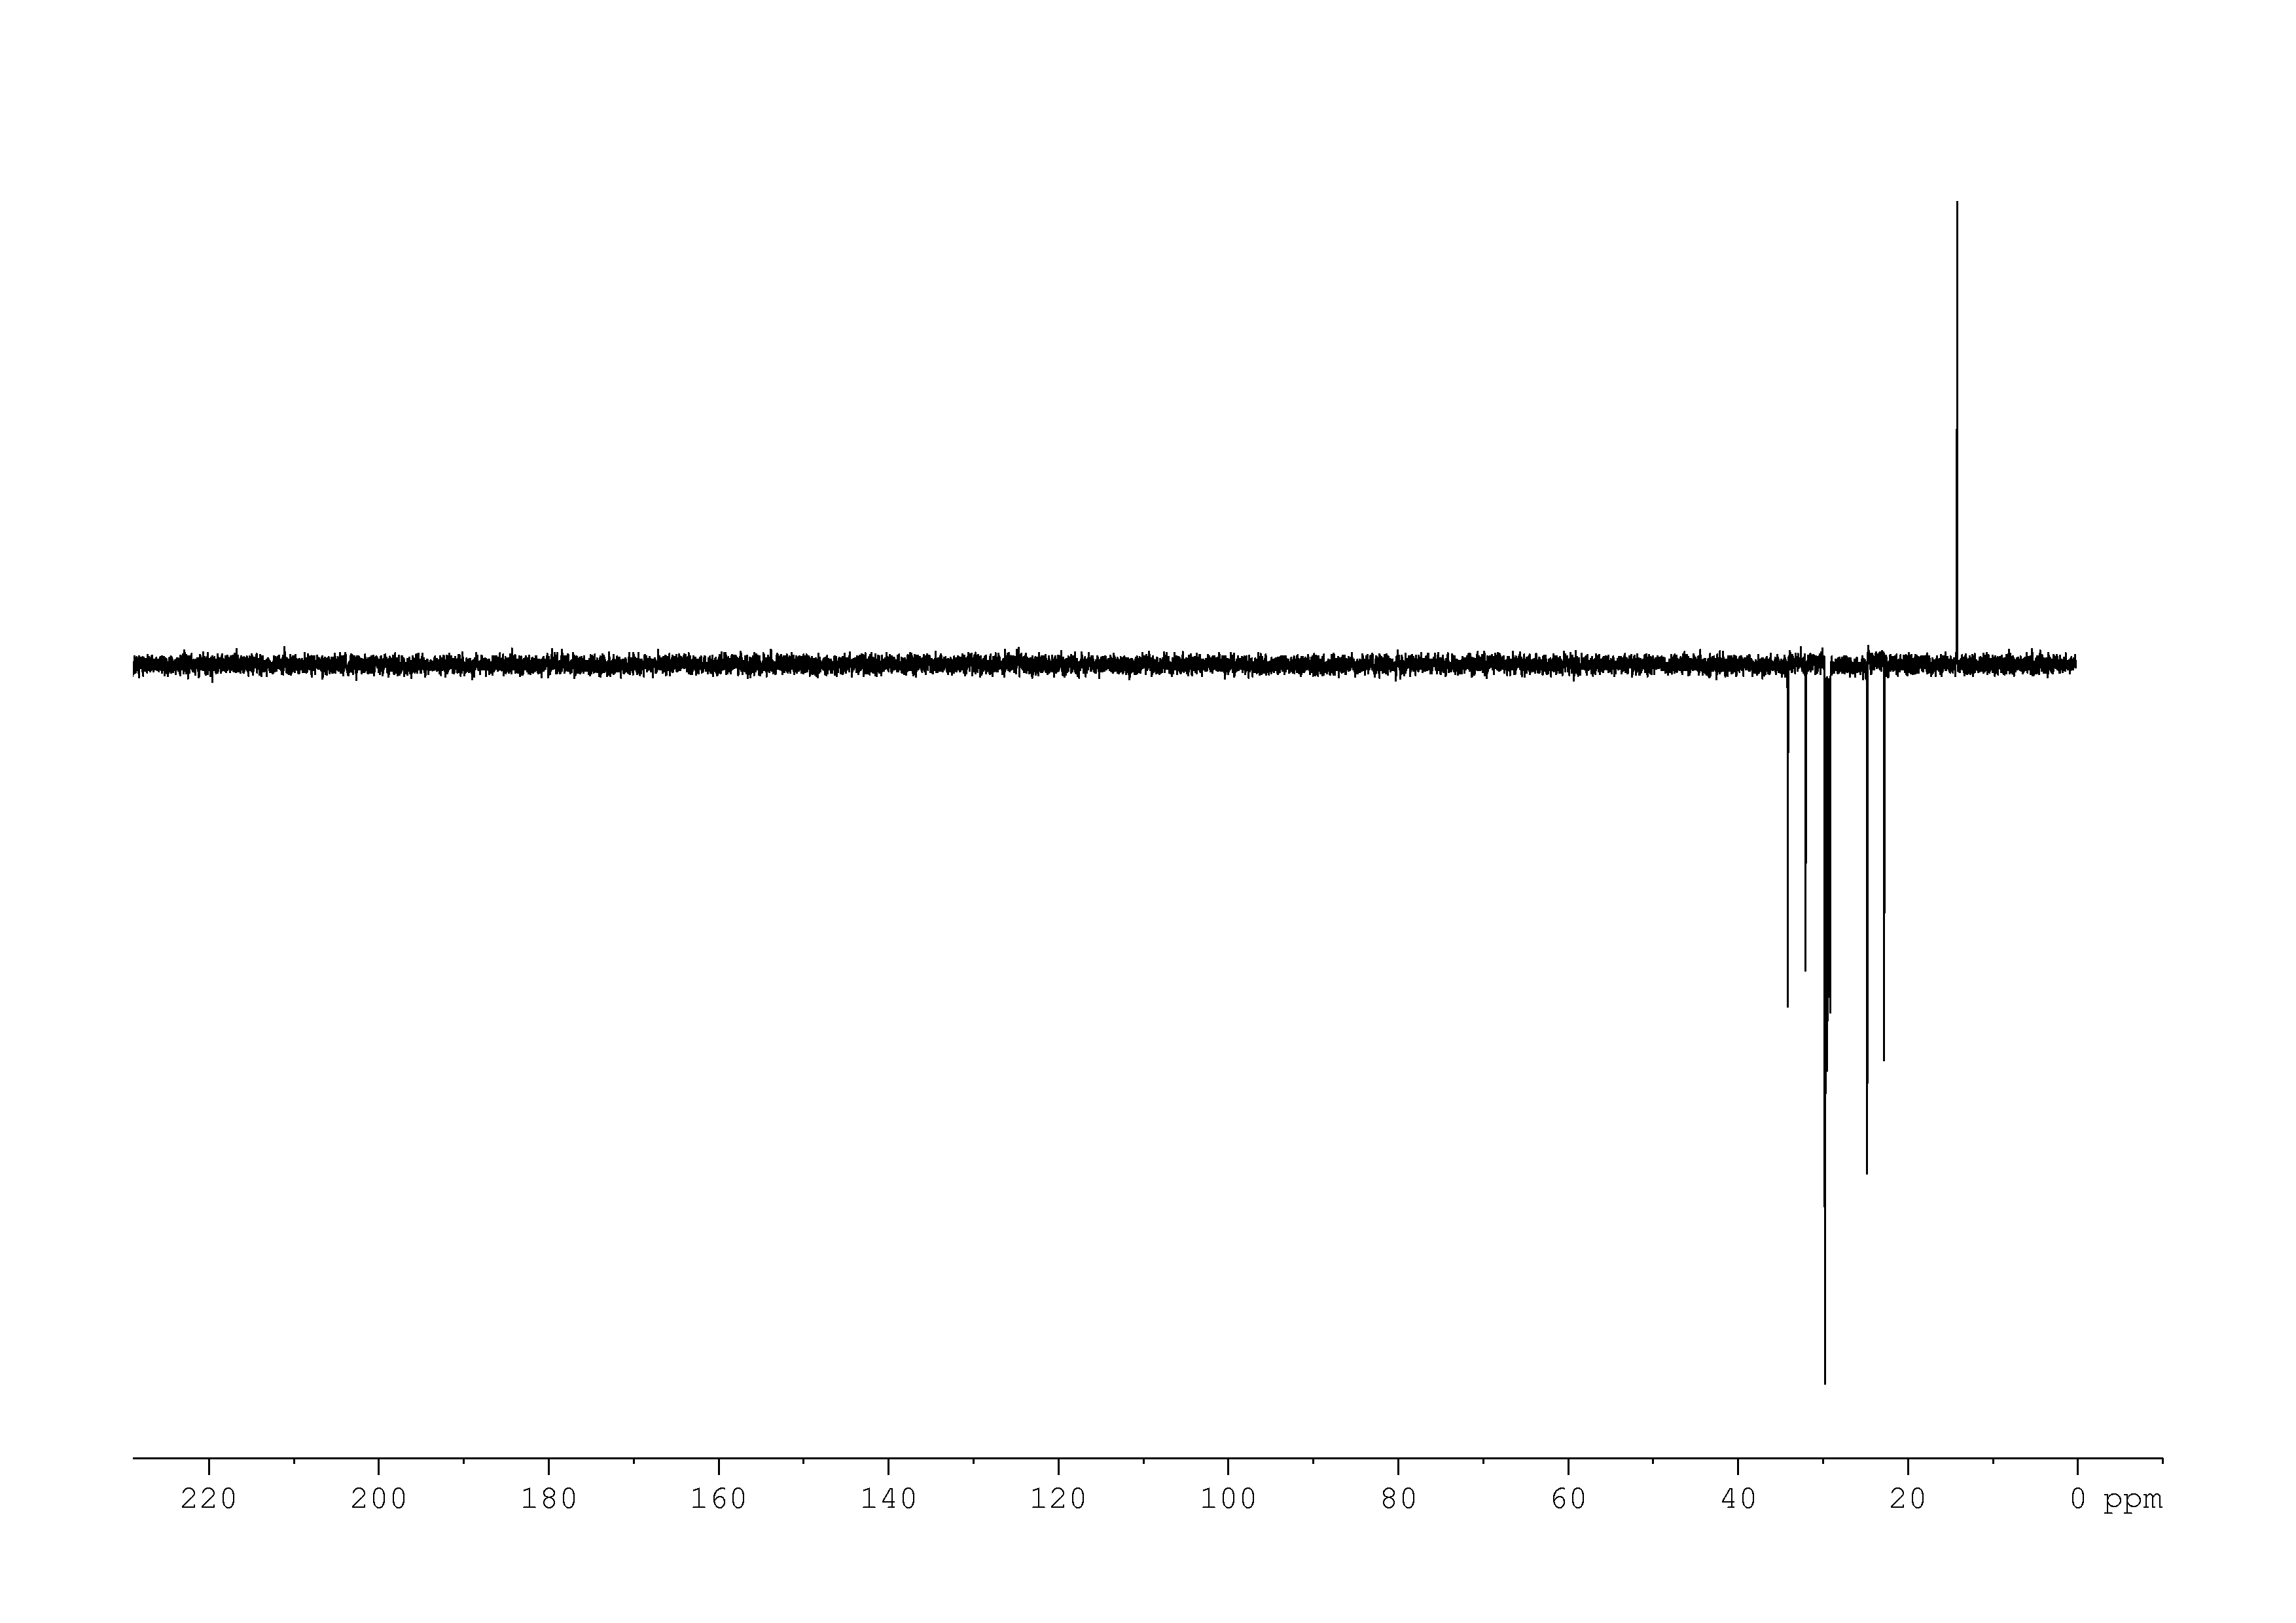 1D DEPT135, n/a spectrum for pentadecanoic acid